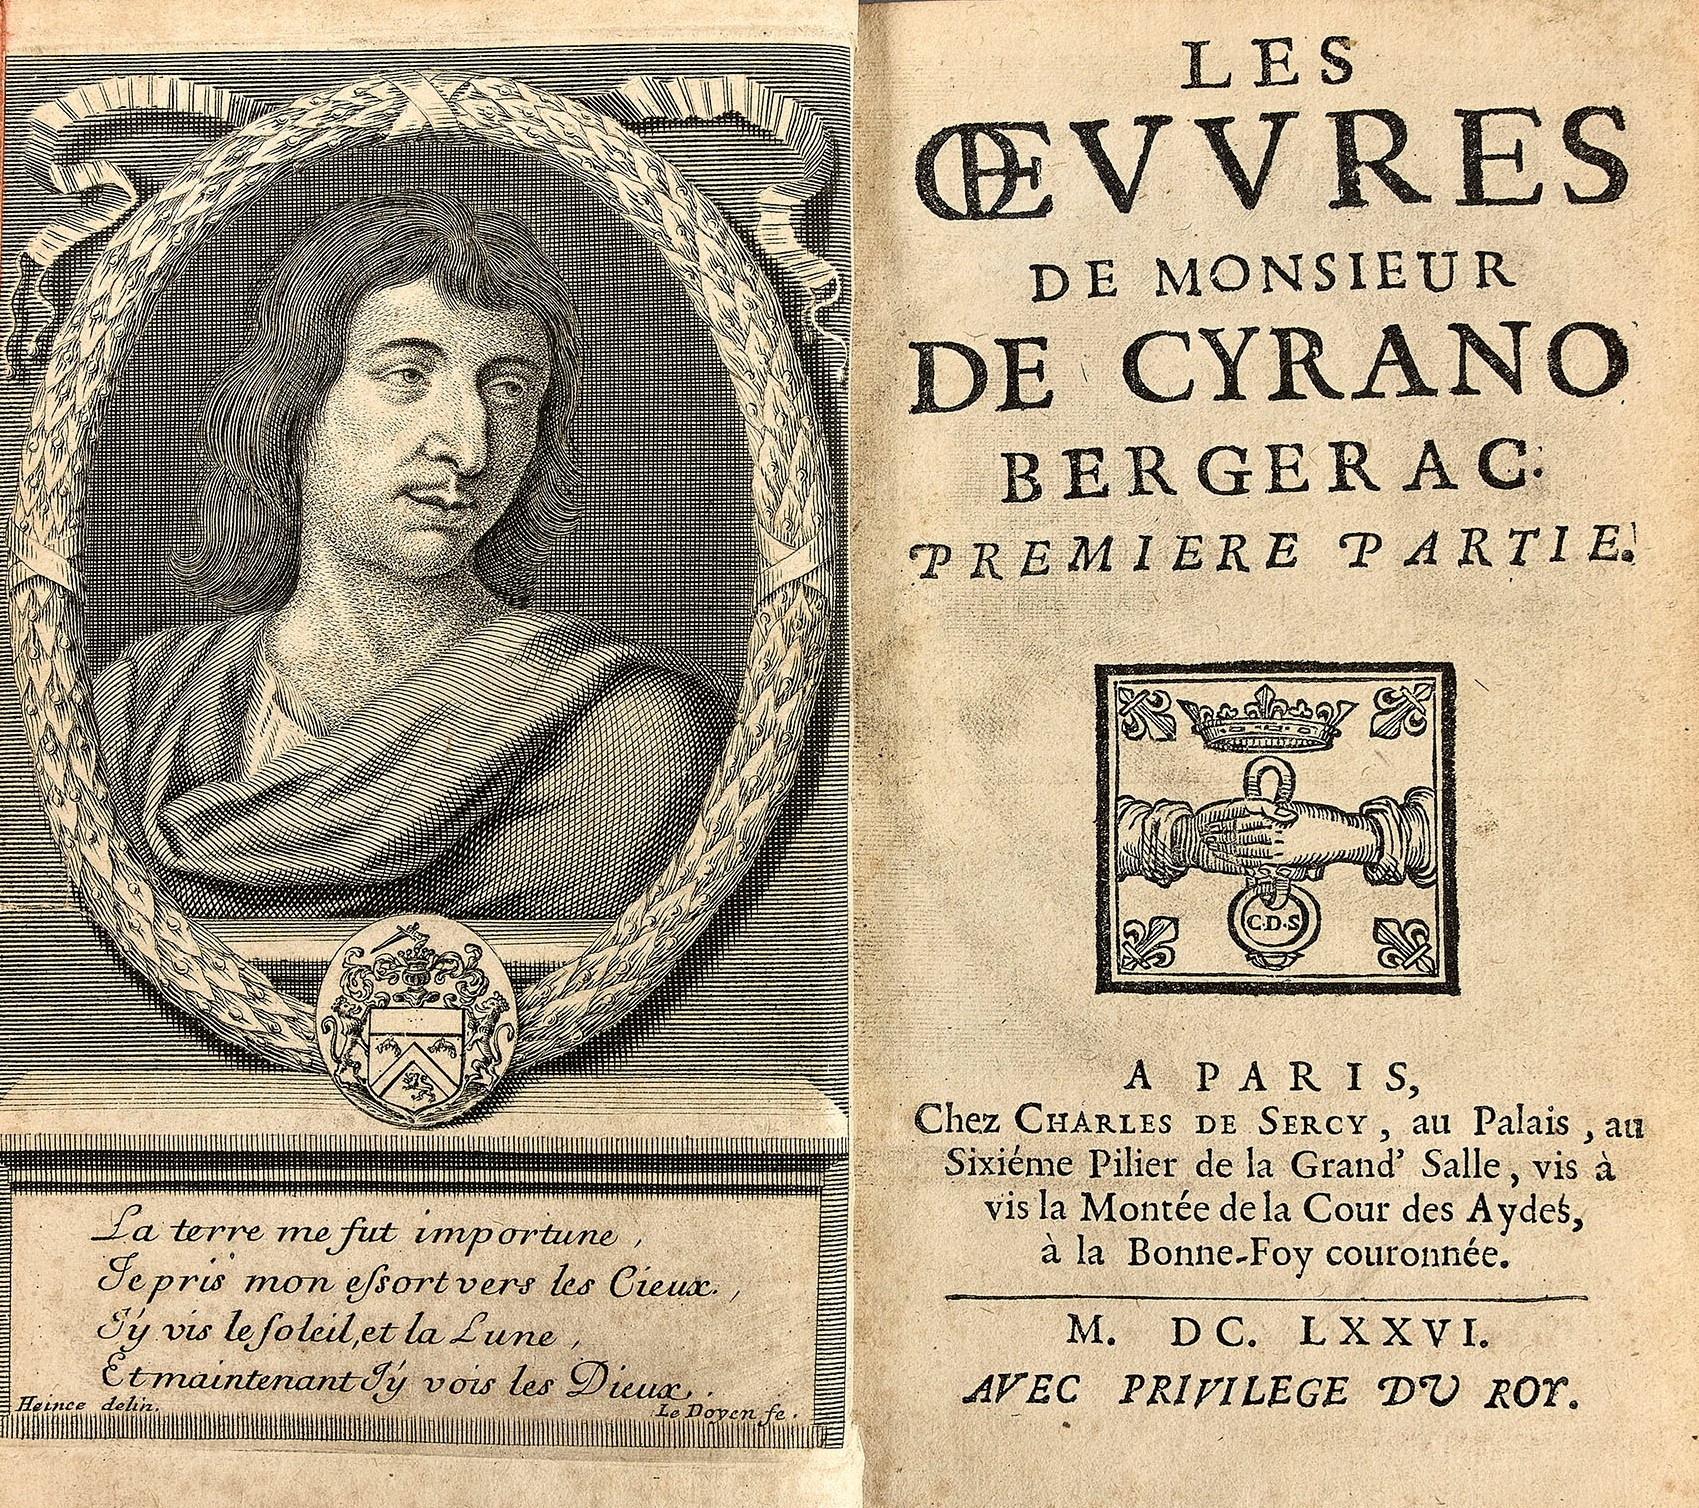 rare-books-first-edition-precious-books-CYRANO-DE-BERGERAC-Les-oeuvres-de-monsieur-Cyrano-de-Bergerac-1676-Paris-rare-books-first-edition-precious-books